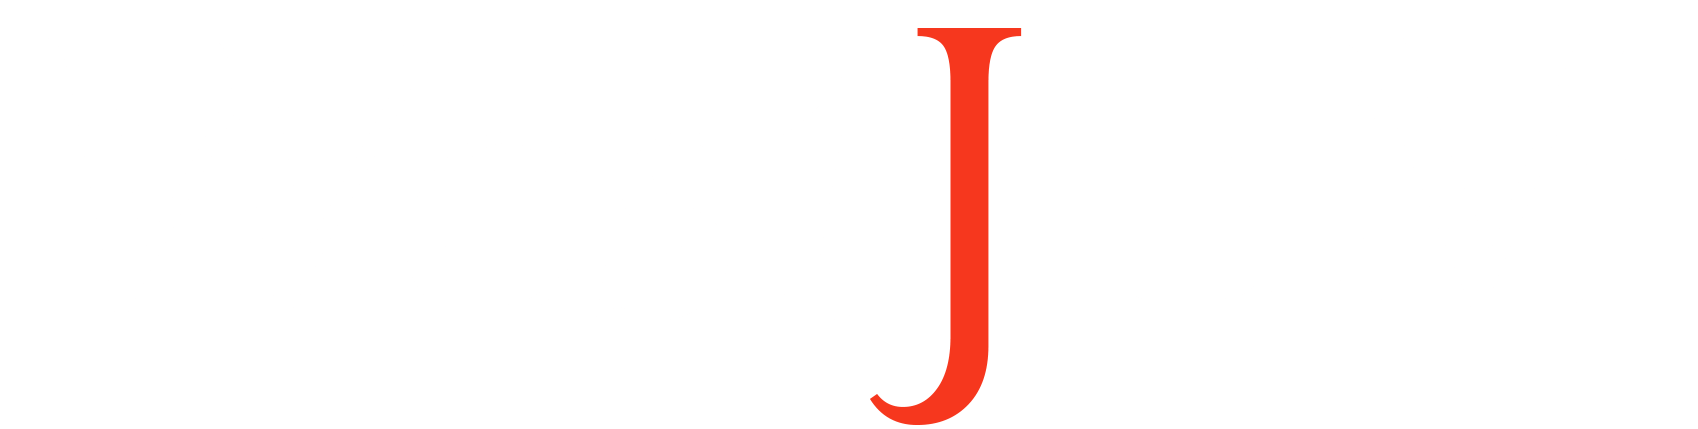 Past Issues - The Western Journal of Emergency Medicine